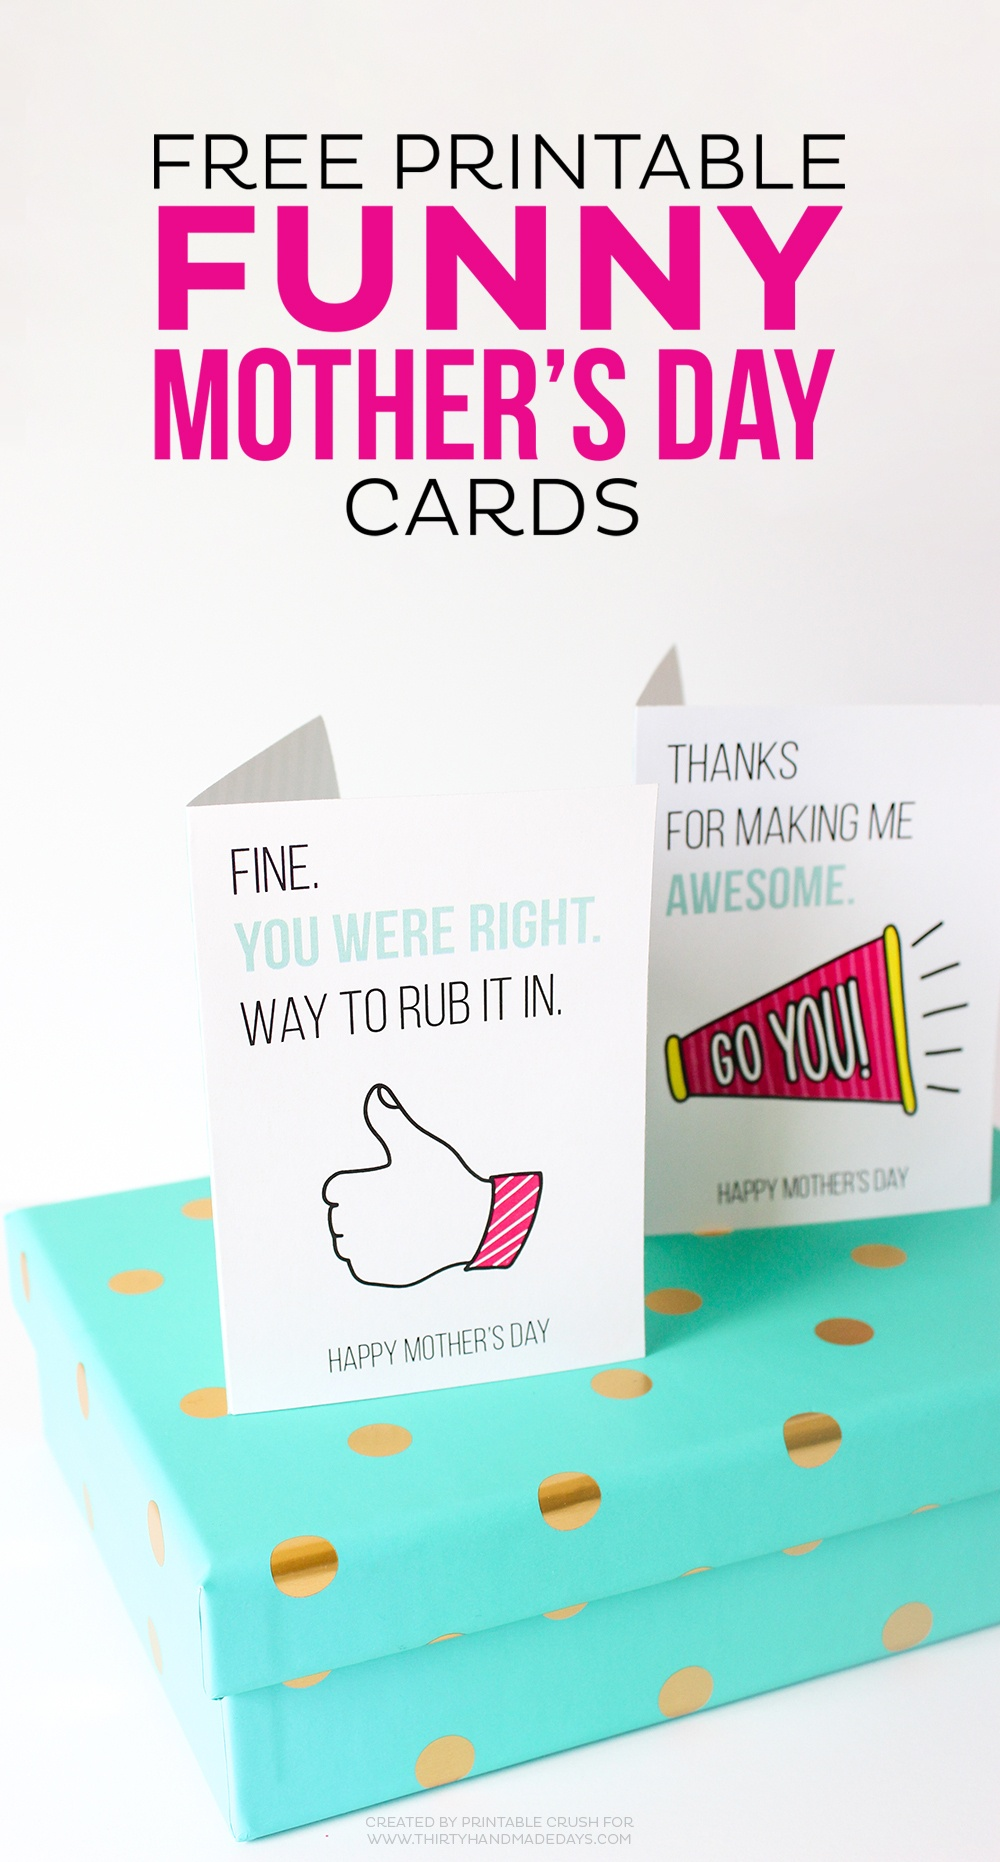 Printable Mother's Day Cards - Free Funny Printable Cards